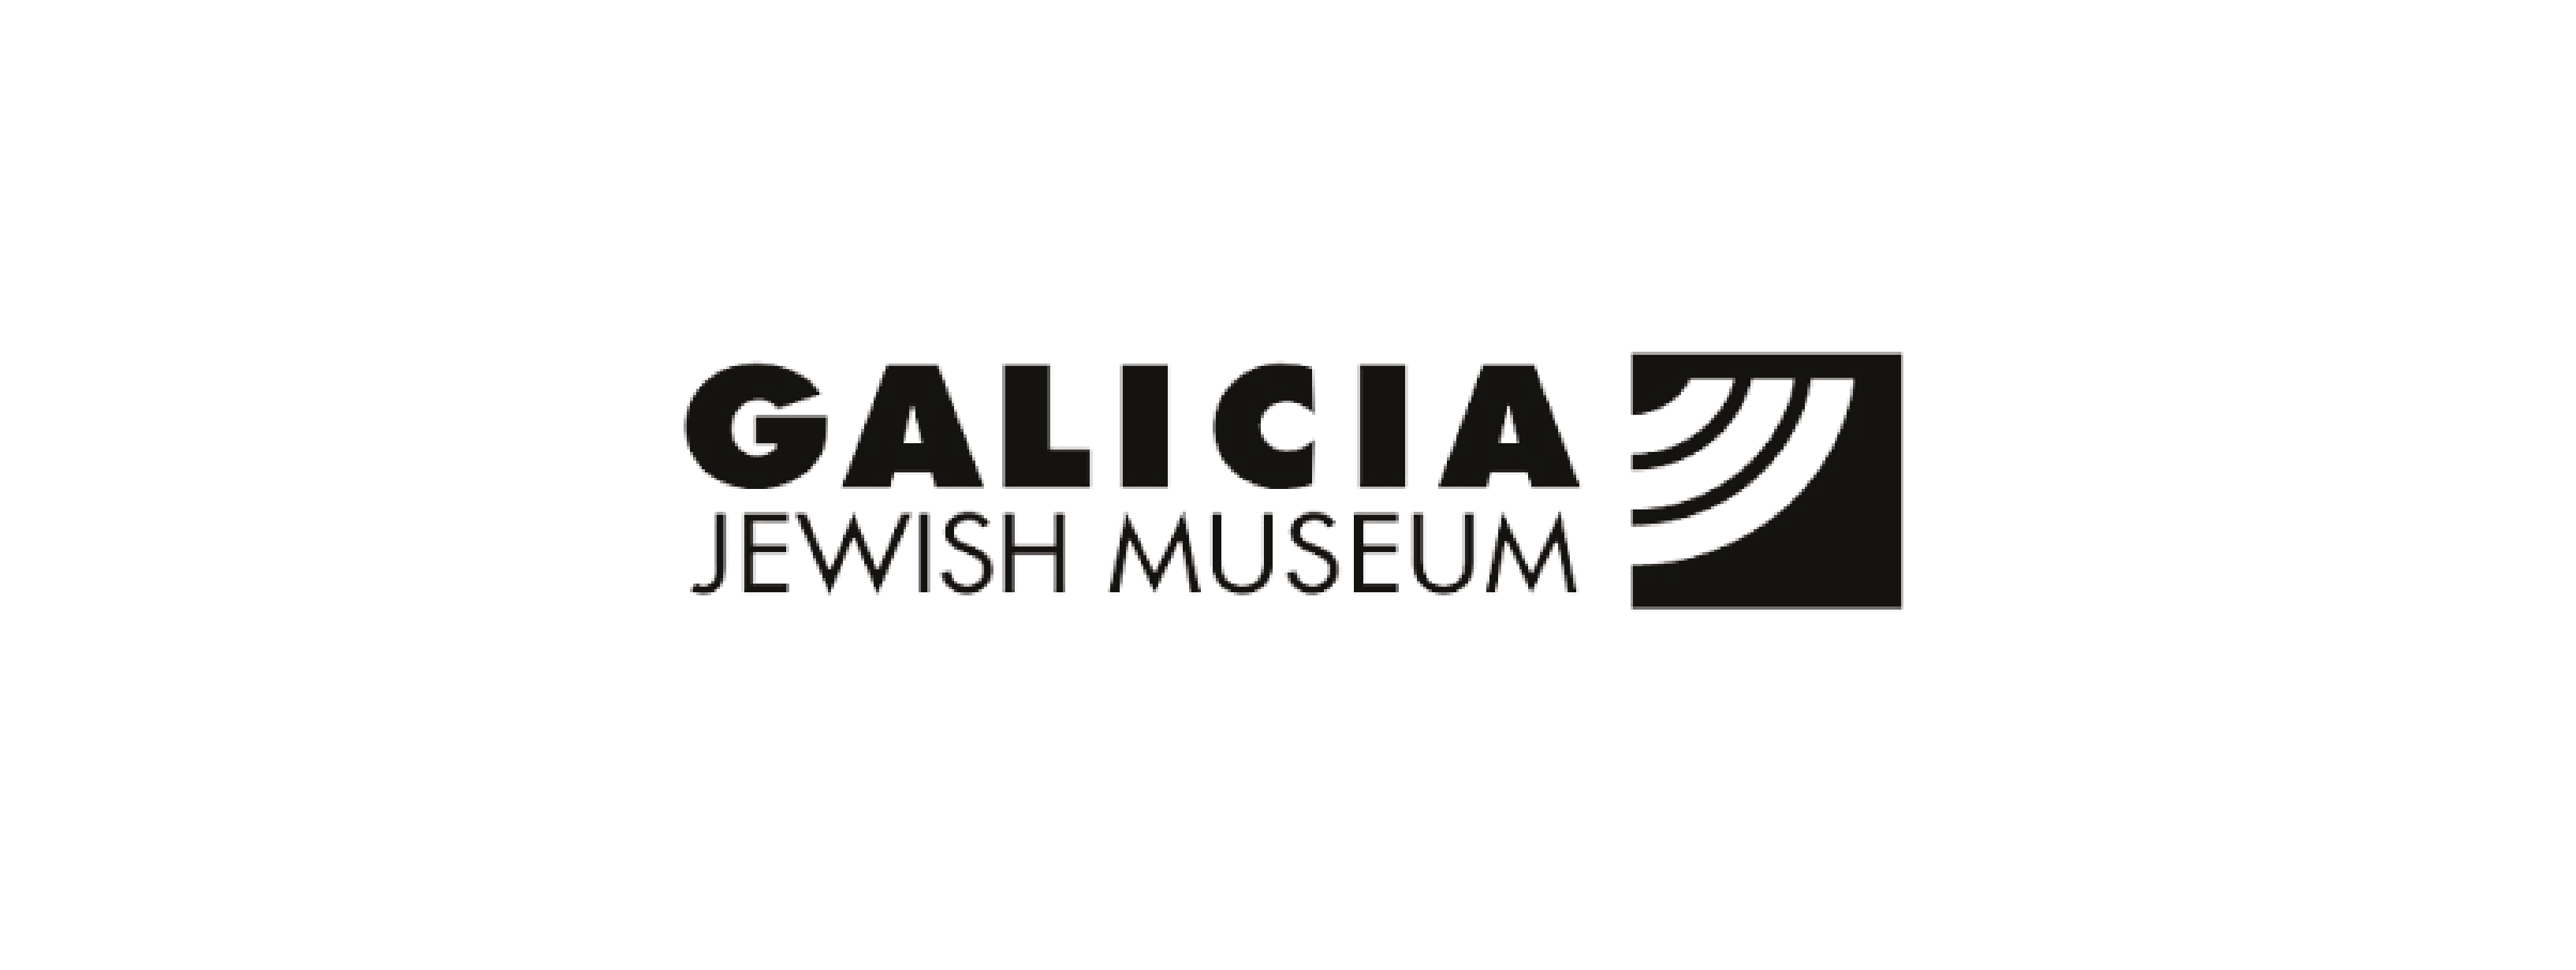 Galicia Jewish Museum